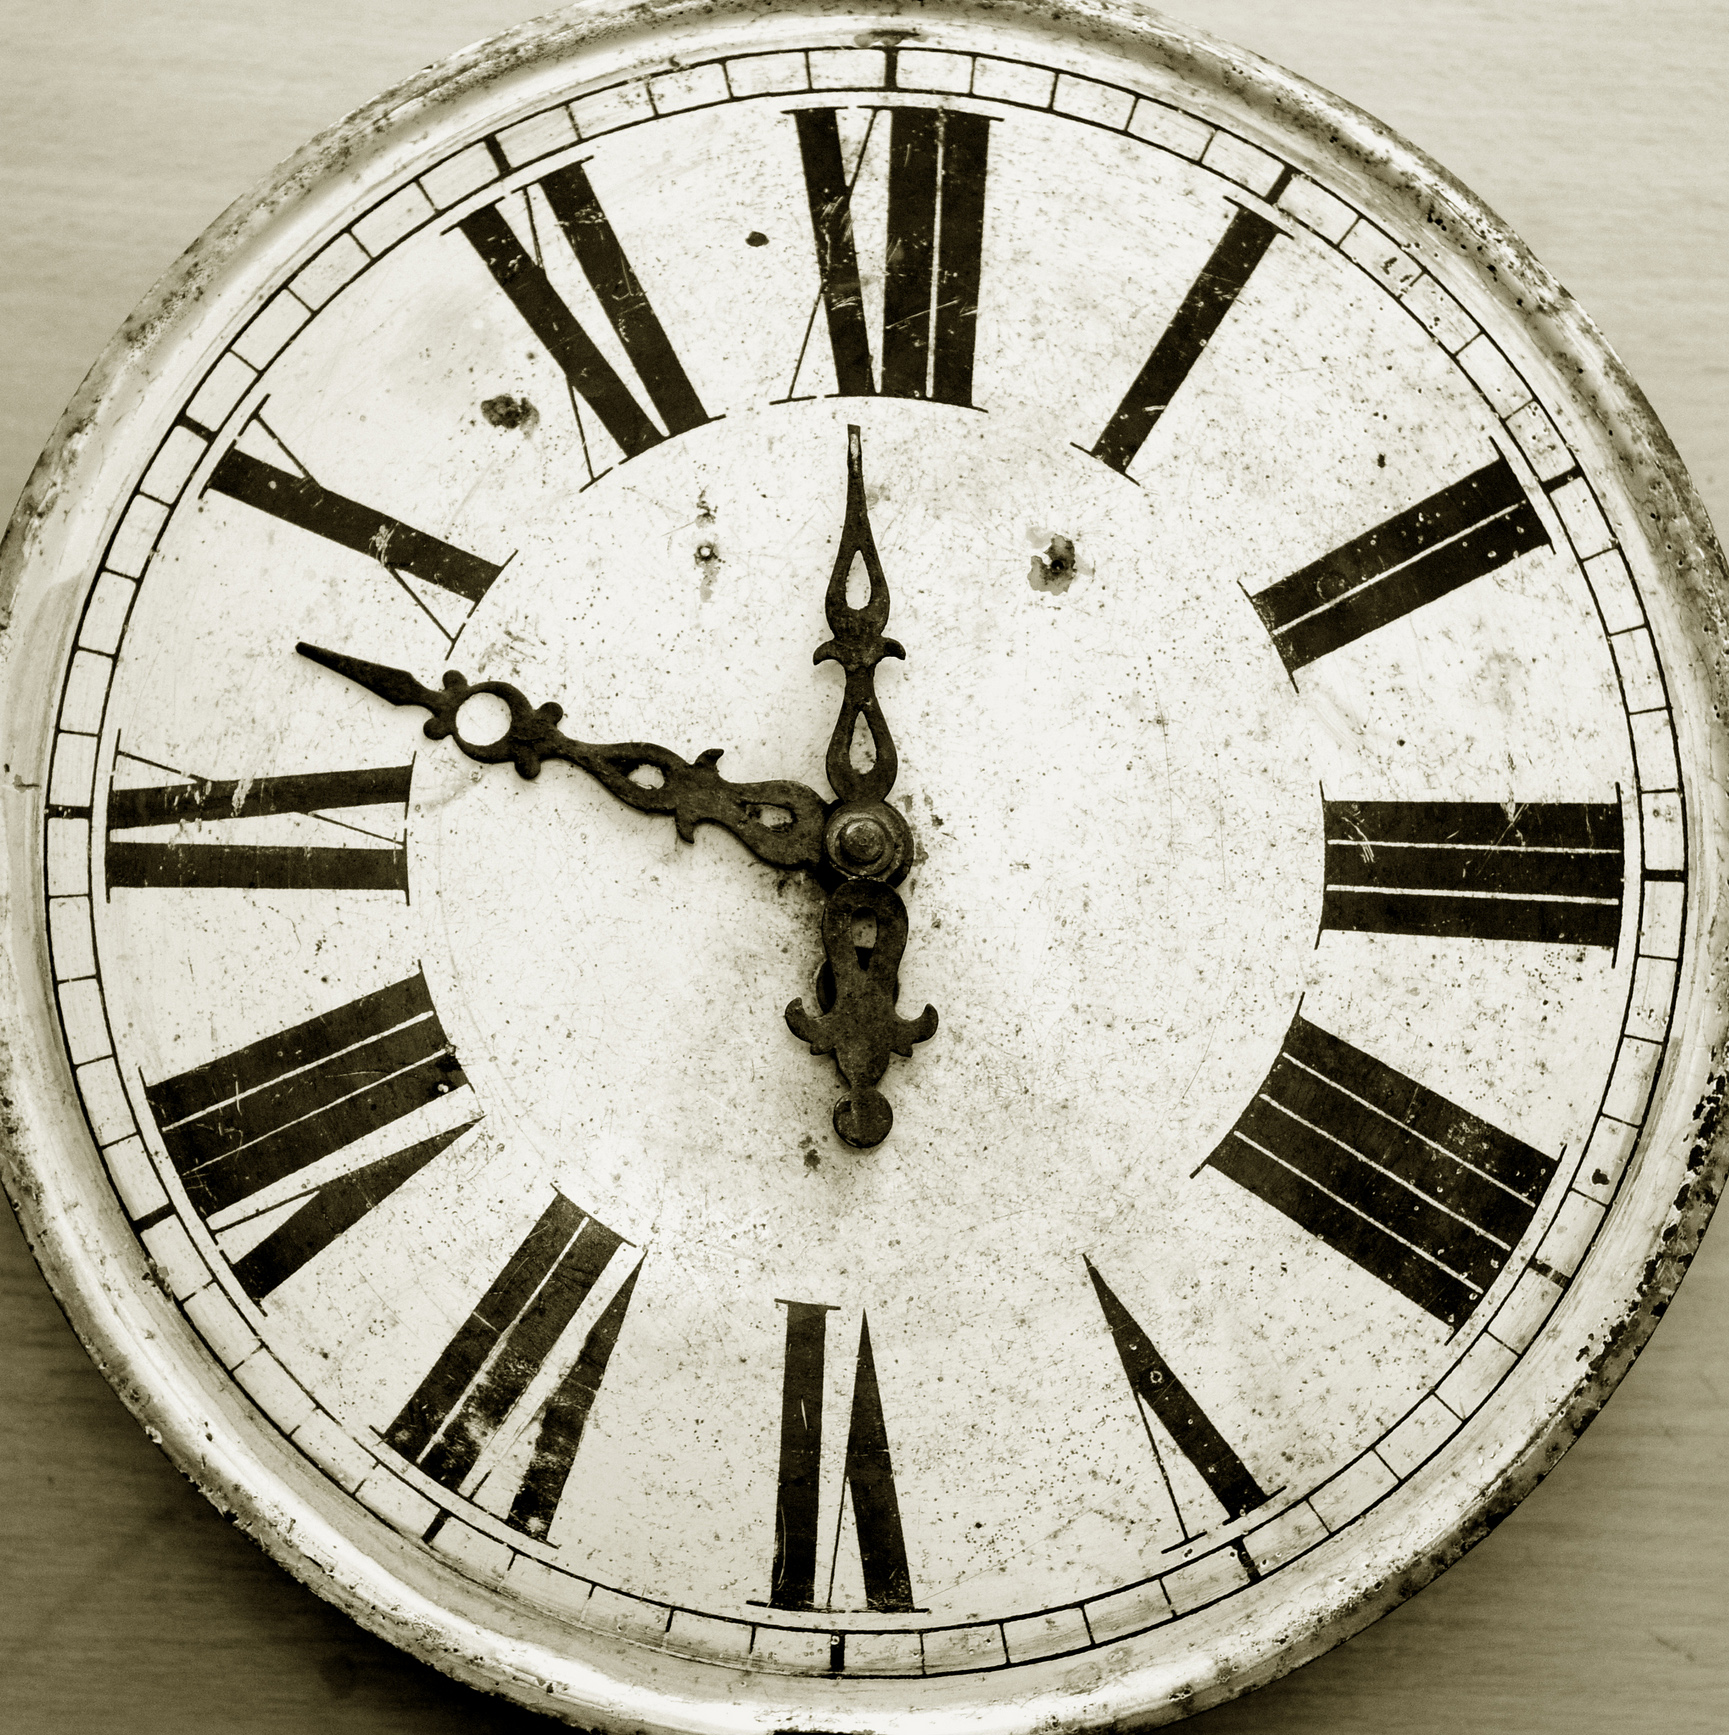 The Roman Numeral Clocks Phenomenon Question